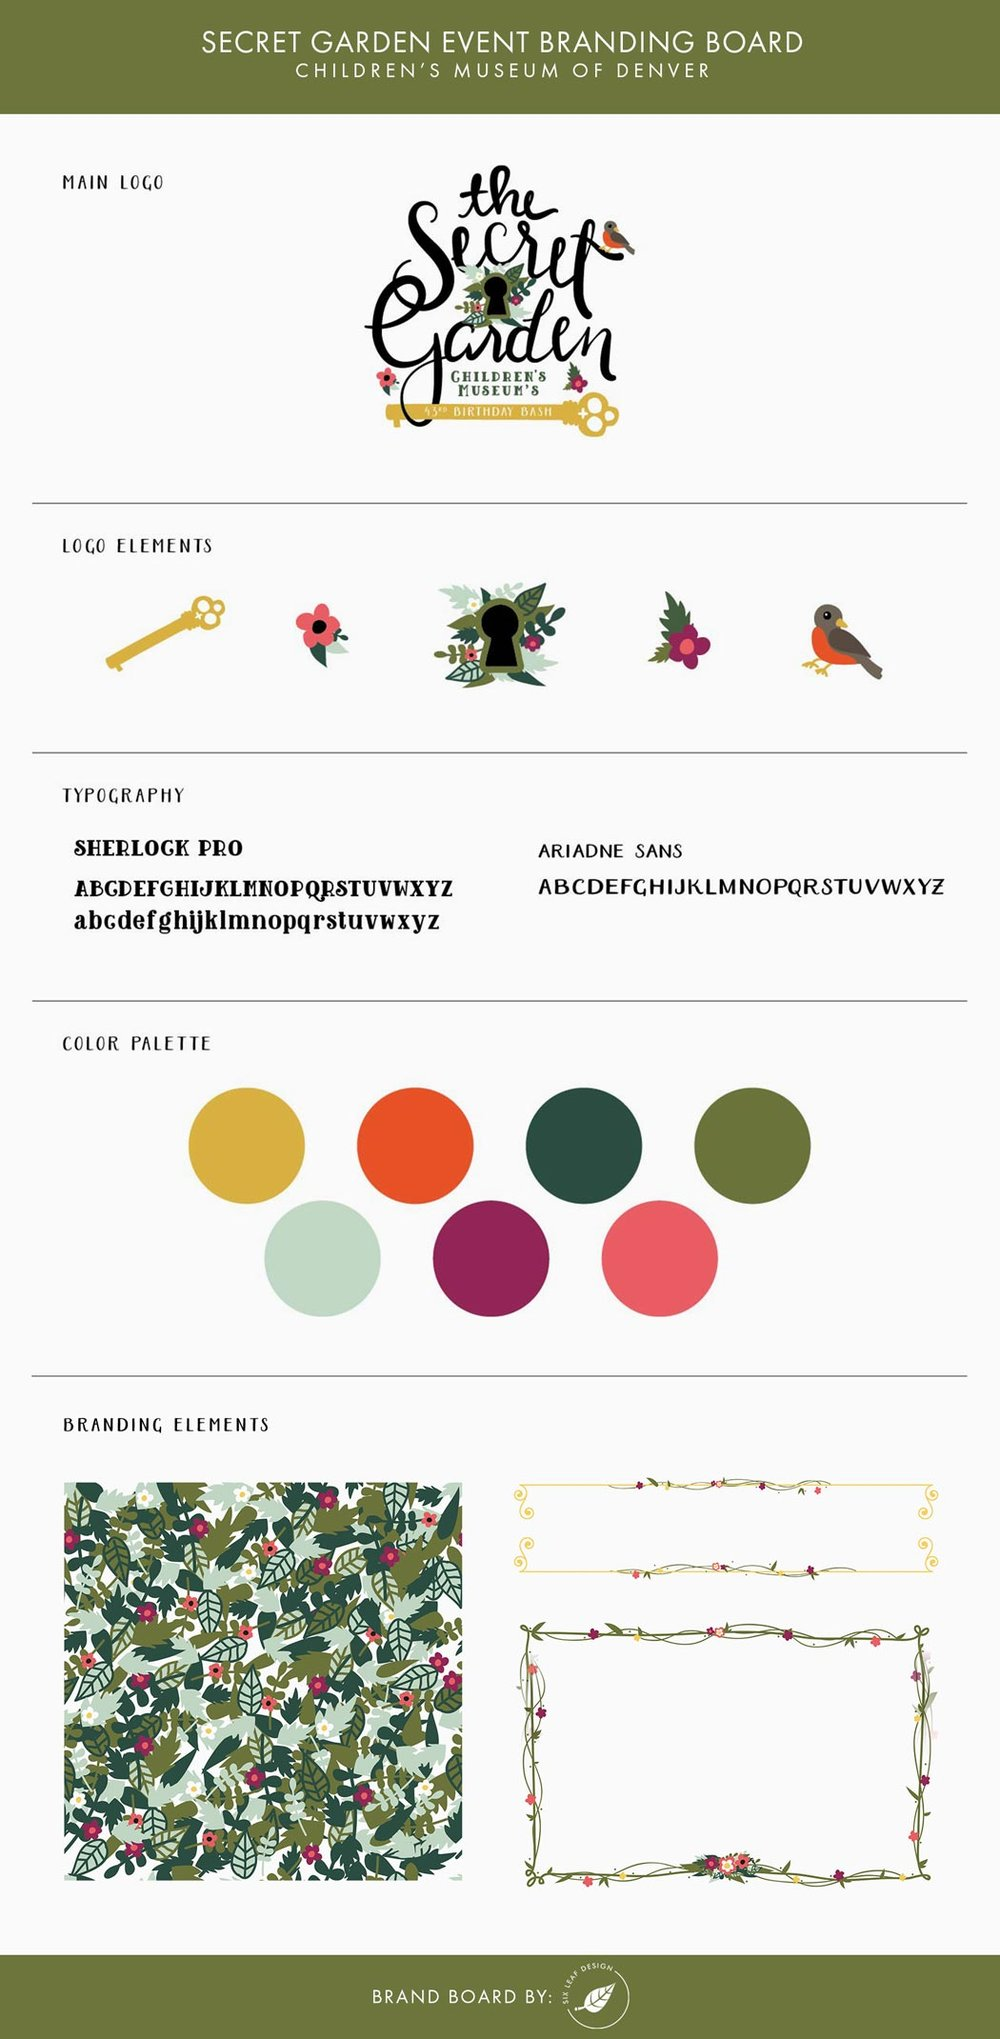 secret garden event branding board with logo design and floral illustration branding elements